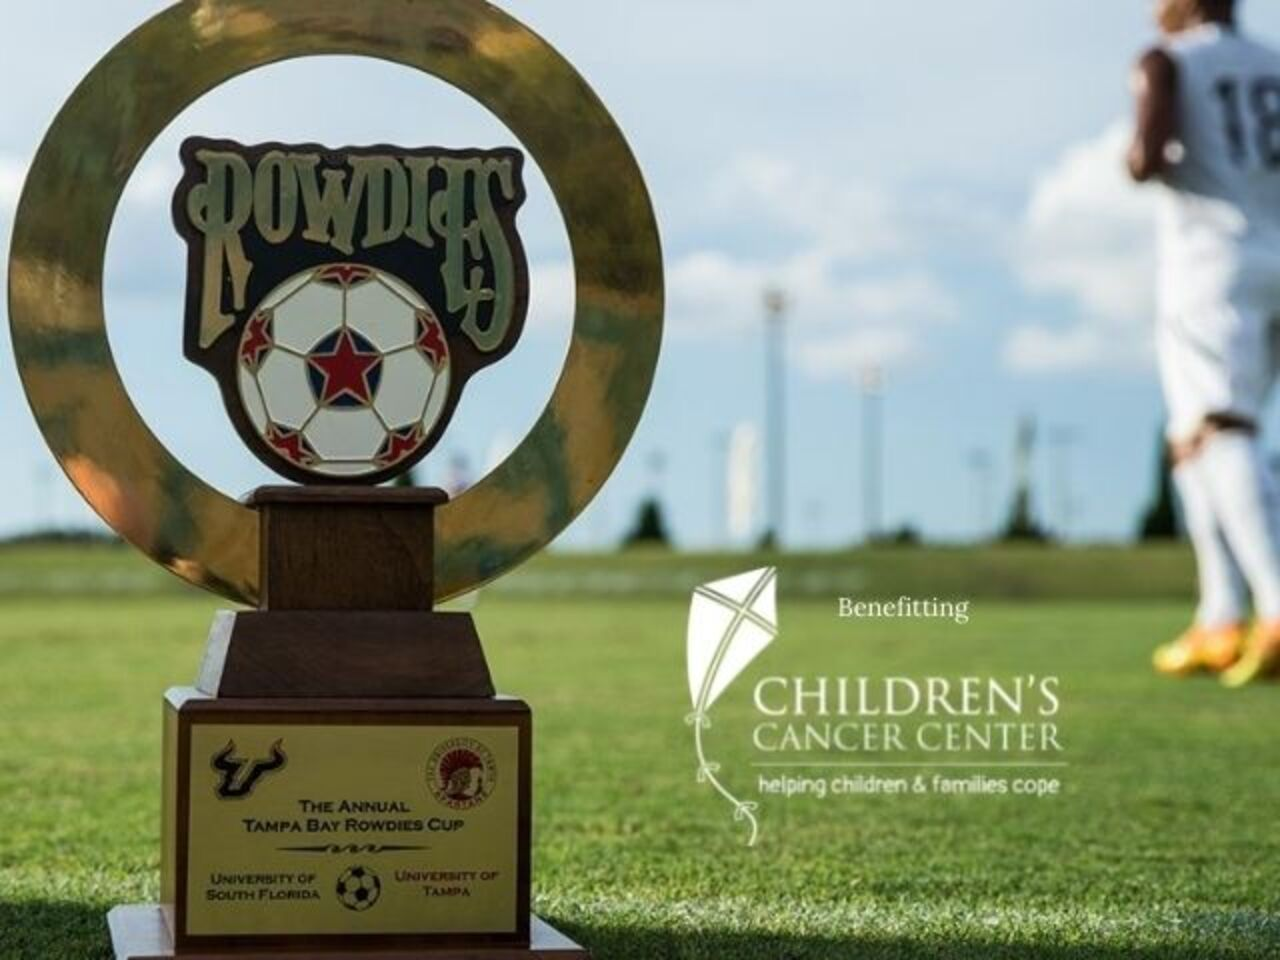 42nd Annual Rowdies Cup - USF vs. UT Men's Soccer